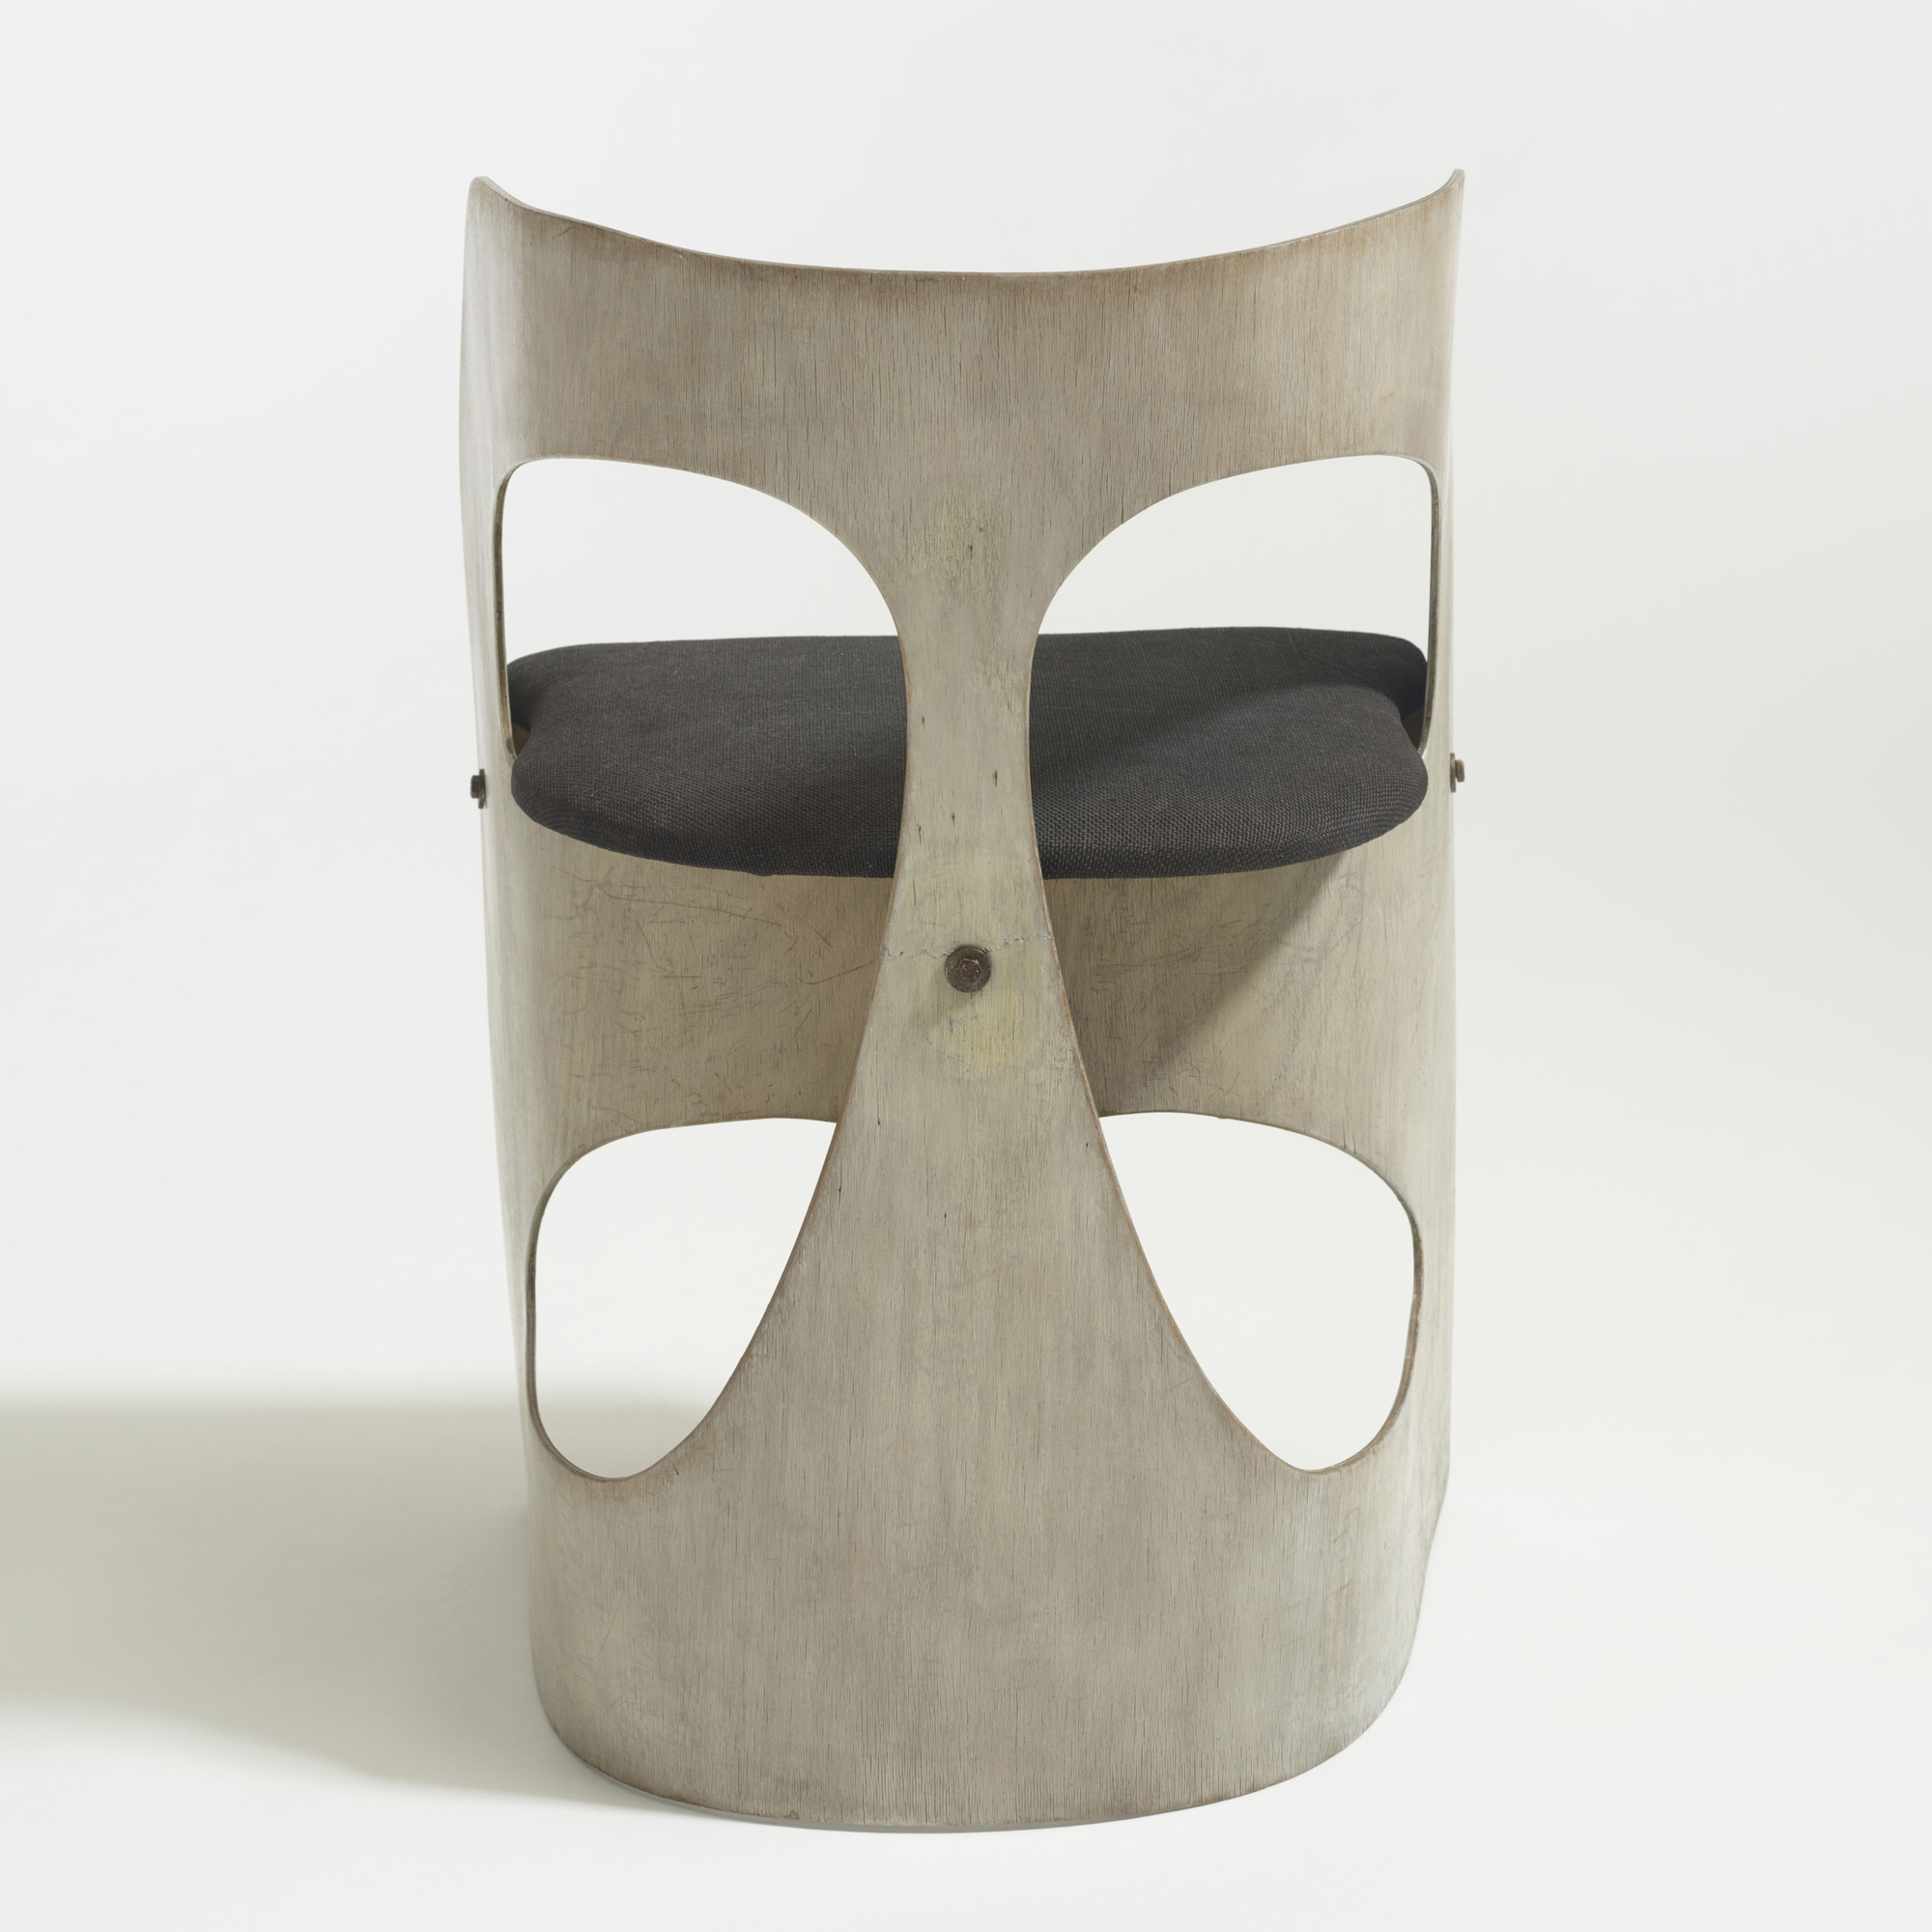 13: Gerald Summers / Rare Cut Ply Chair (CPC) (3 of 3)